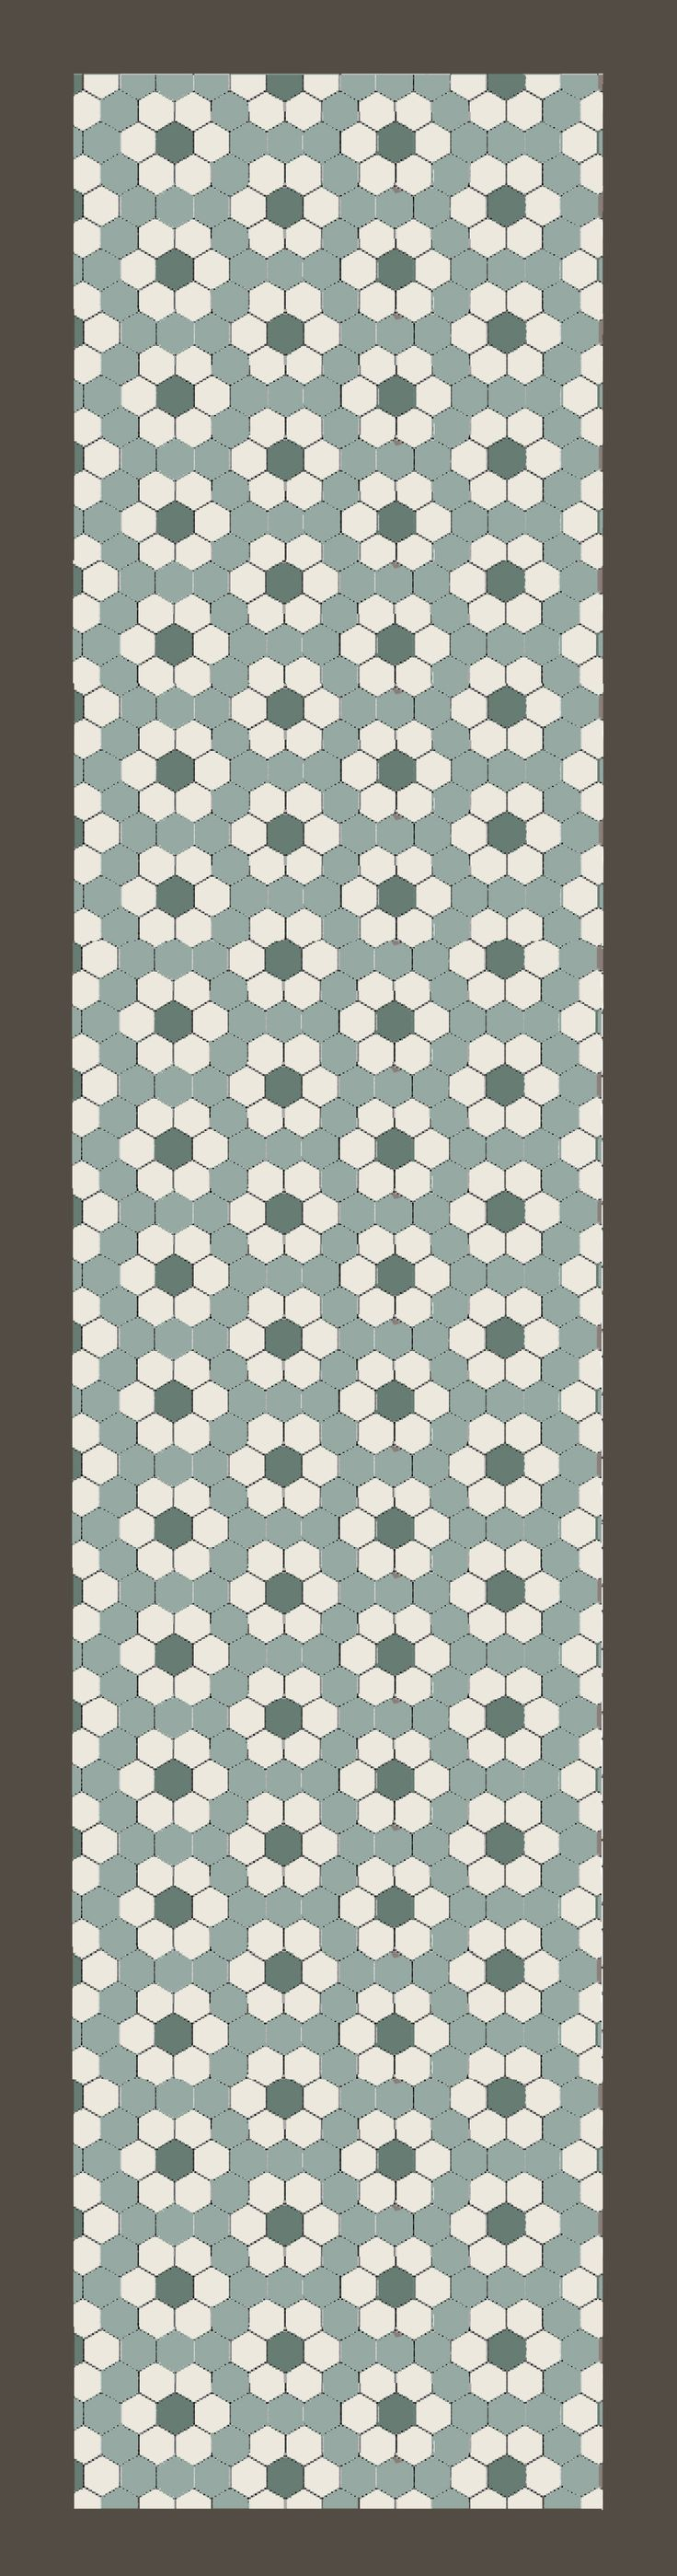 in de gang hexagon 10x10 cm blue pale, blanc vert pale antraciet. vanaf 89 euro per m2. Hexagon tile pattern